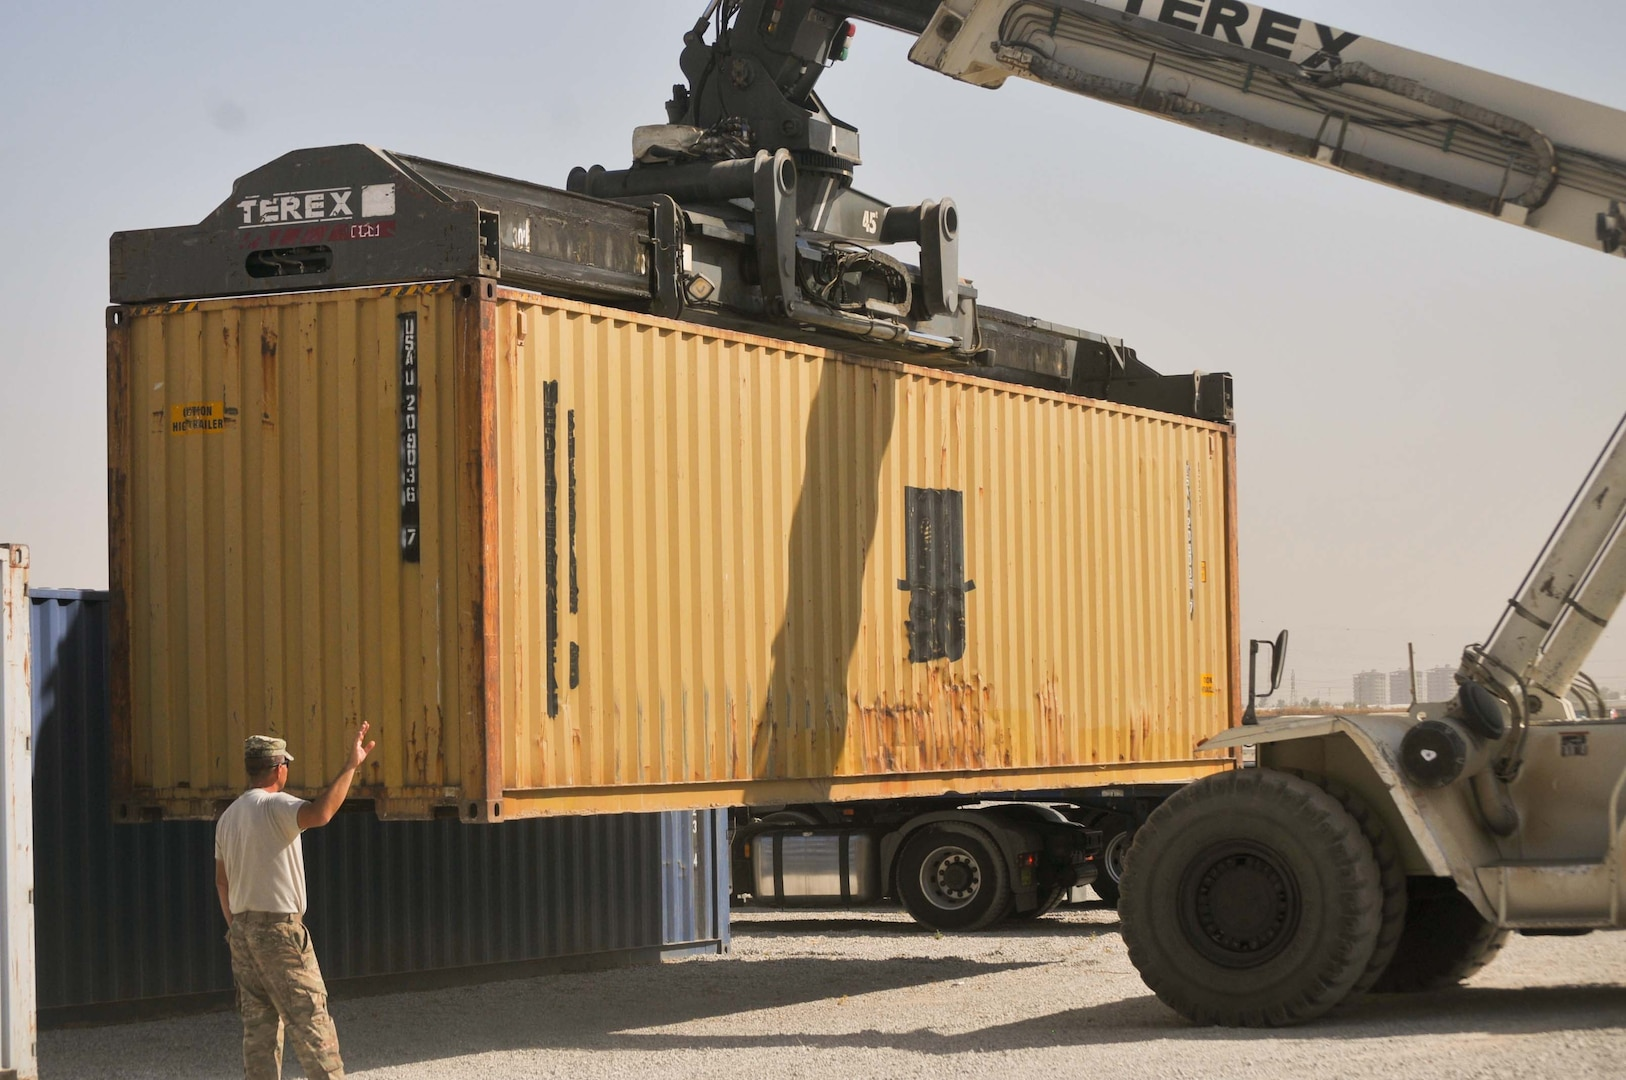 In this file photo taken Sept. 3 2016, U.S. Army Sgt. Robert Wheeler, 336th Combat Support Sustainment, directs a crane repositioning a container, in Erbil, Iraq. The 336th CCSB's  material handling equipment team helps move supplies for coalition forces in Erbil, and works with the support operations cell of the 526th Brigade Support Battalion, Task Force Strike to sustain operations in northern Iraq. (U.S. Army photo by 1st Lt. Daniel Johnson)